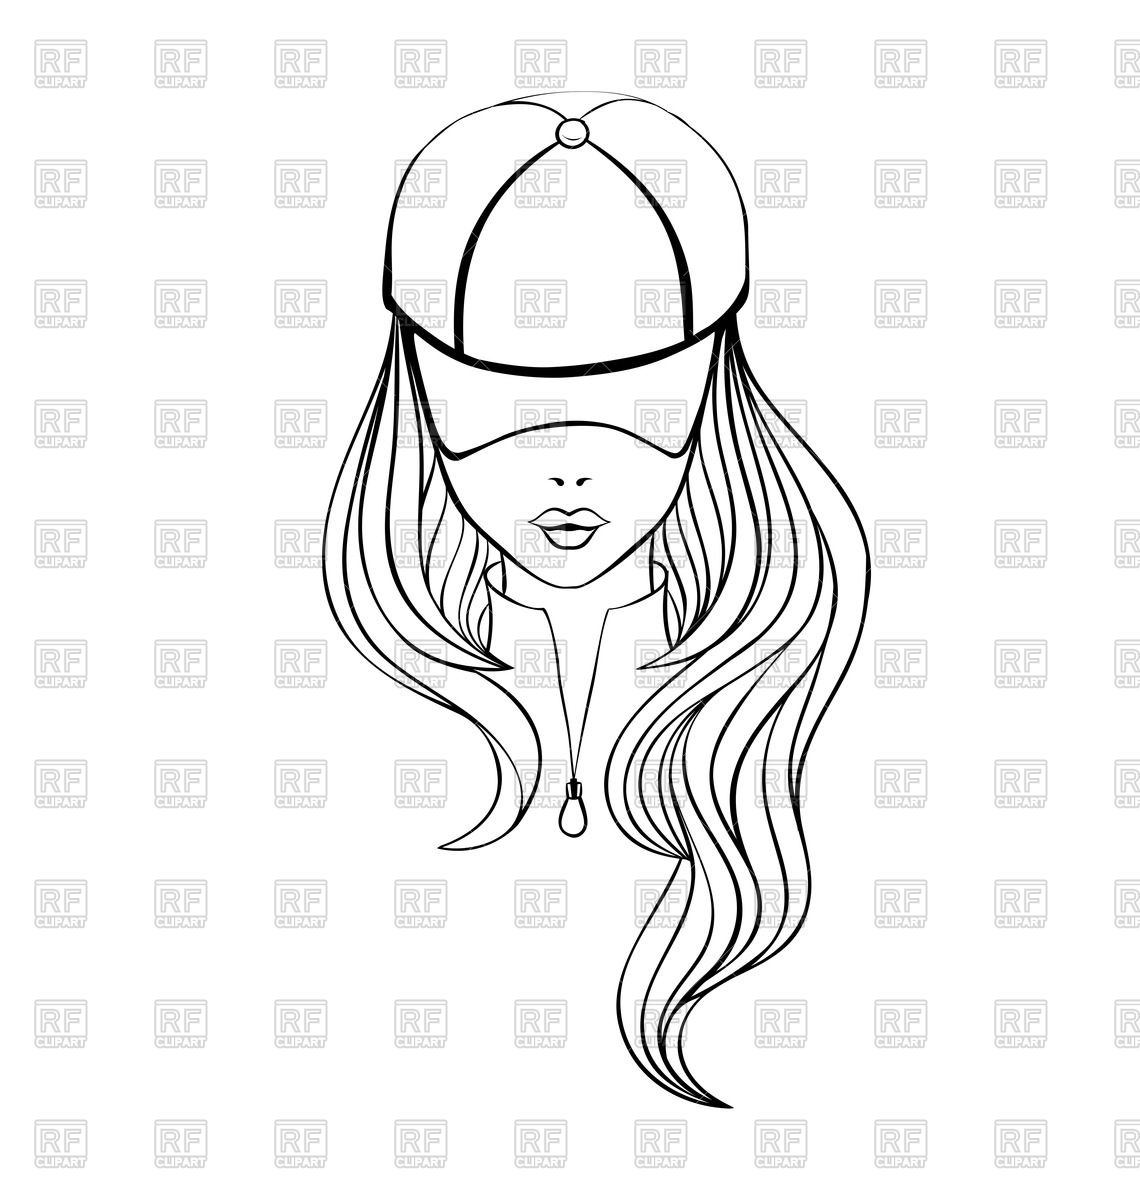 1140x1200 Outline Of Woman With Long Hair In Baseball Cap Royalty Free